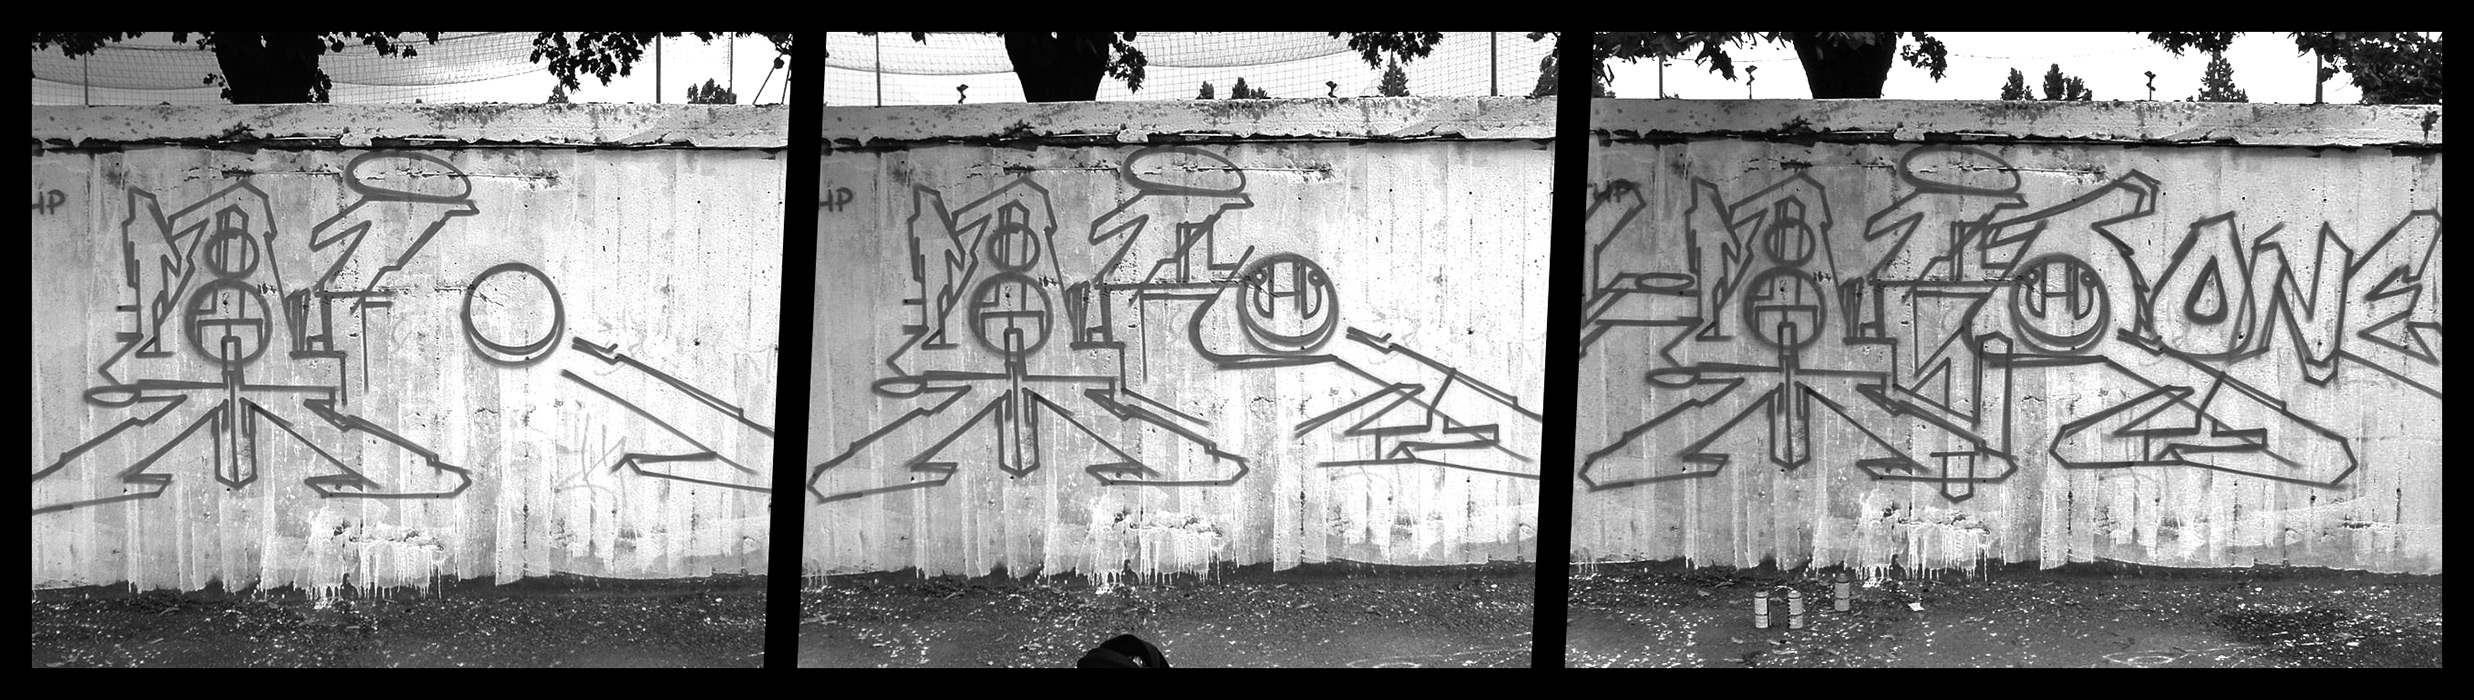 Airone - Sketch in progress - Cernusco sul Naviglio - 2005